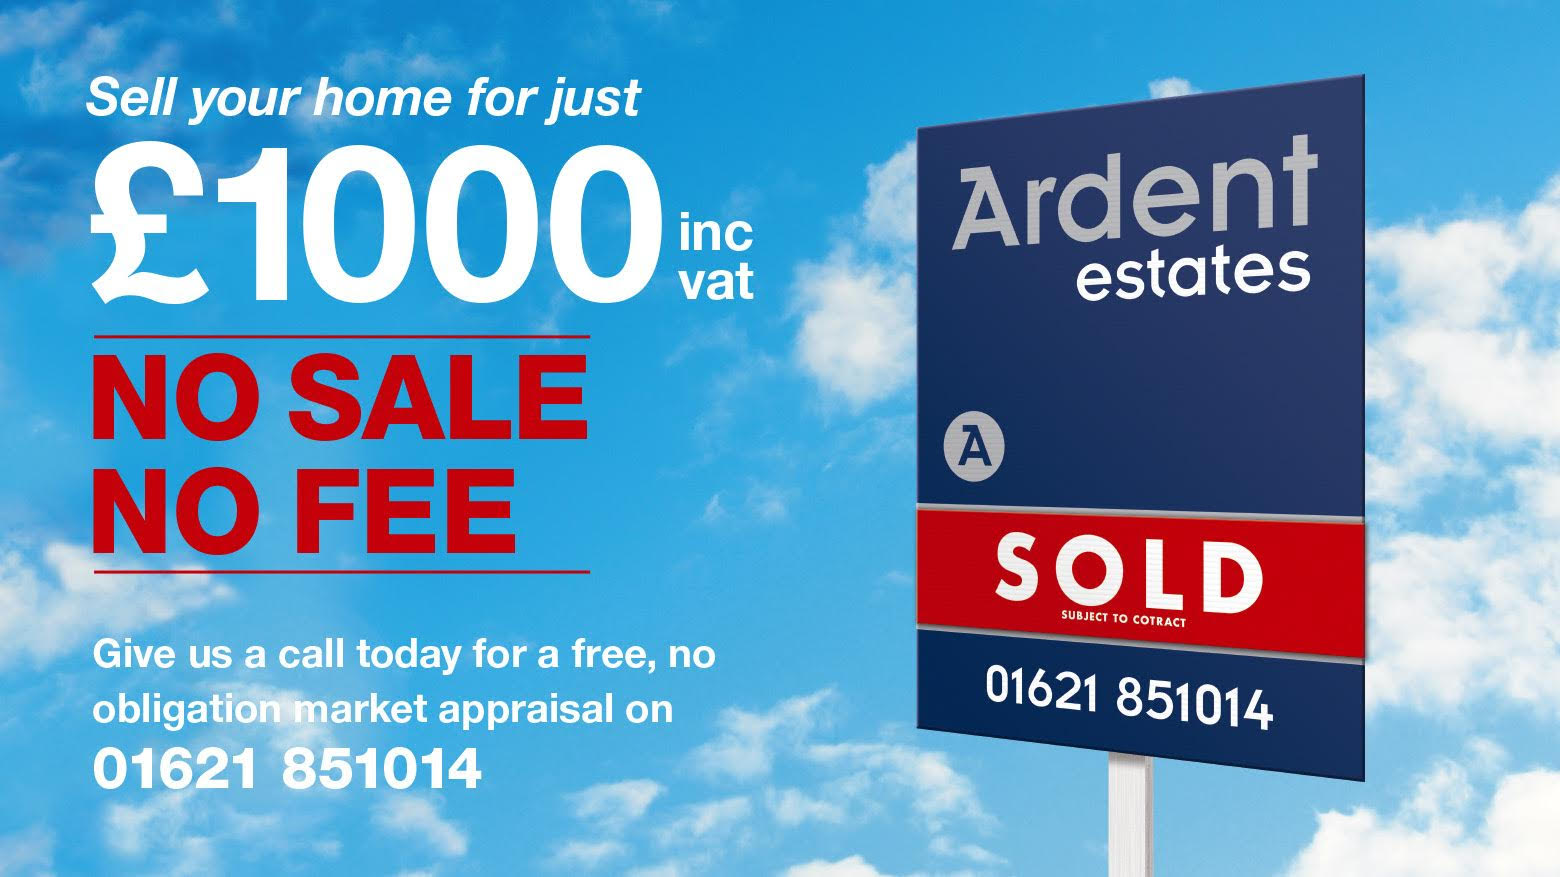 Sell your home for just £1000 . No Sale. No fee. Give us a call today.